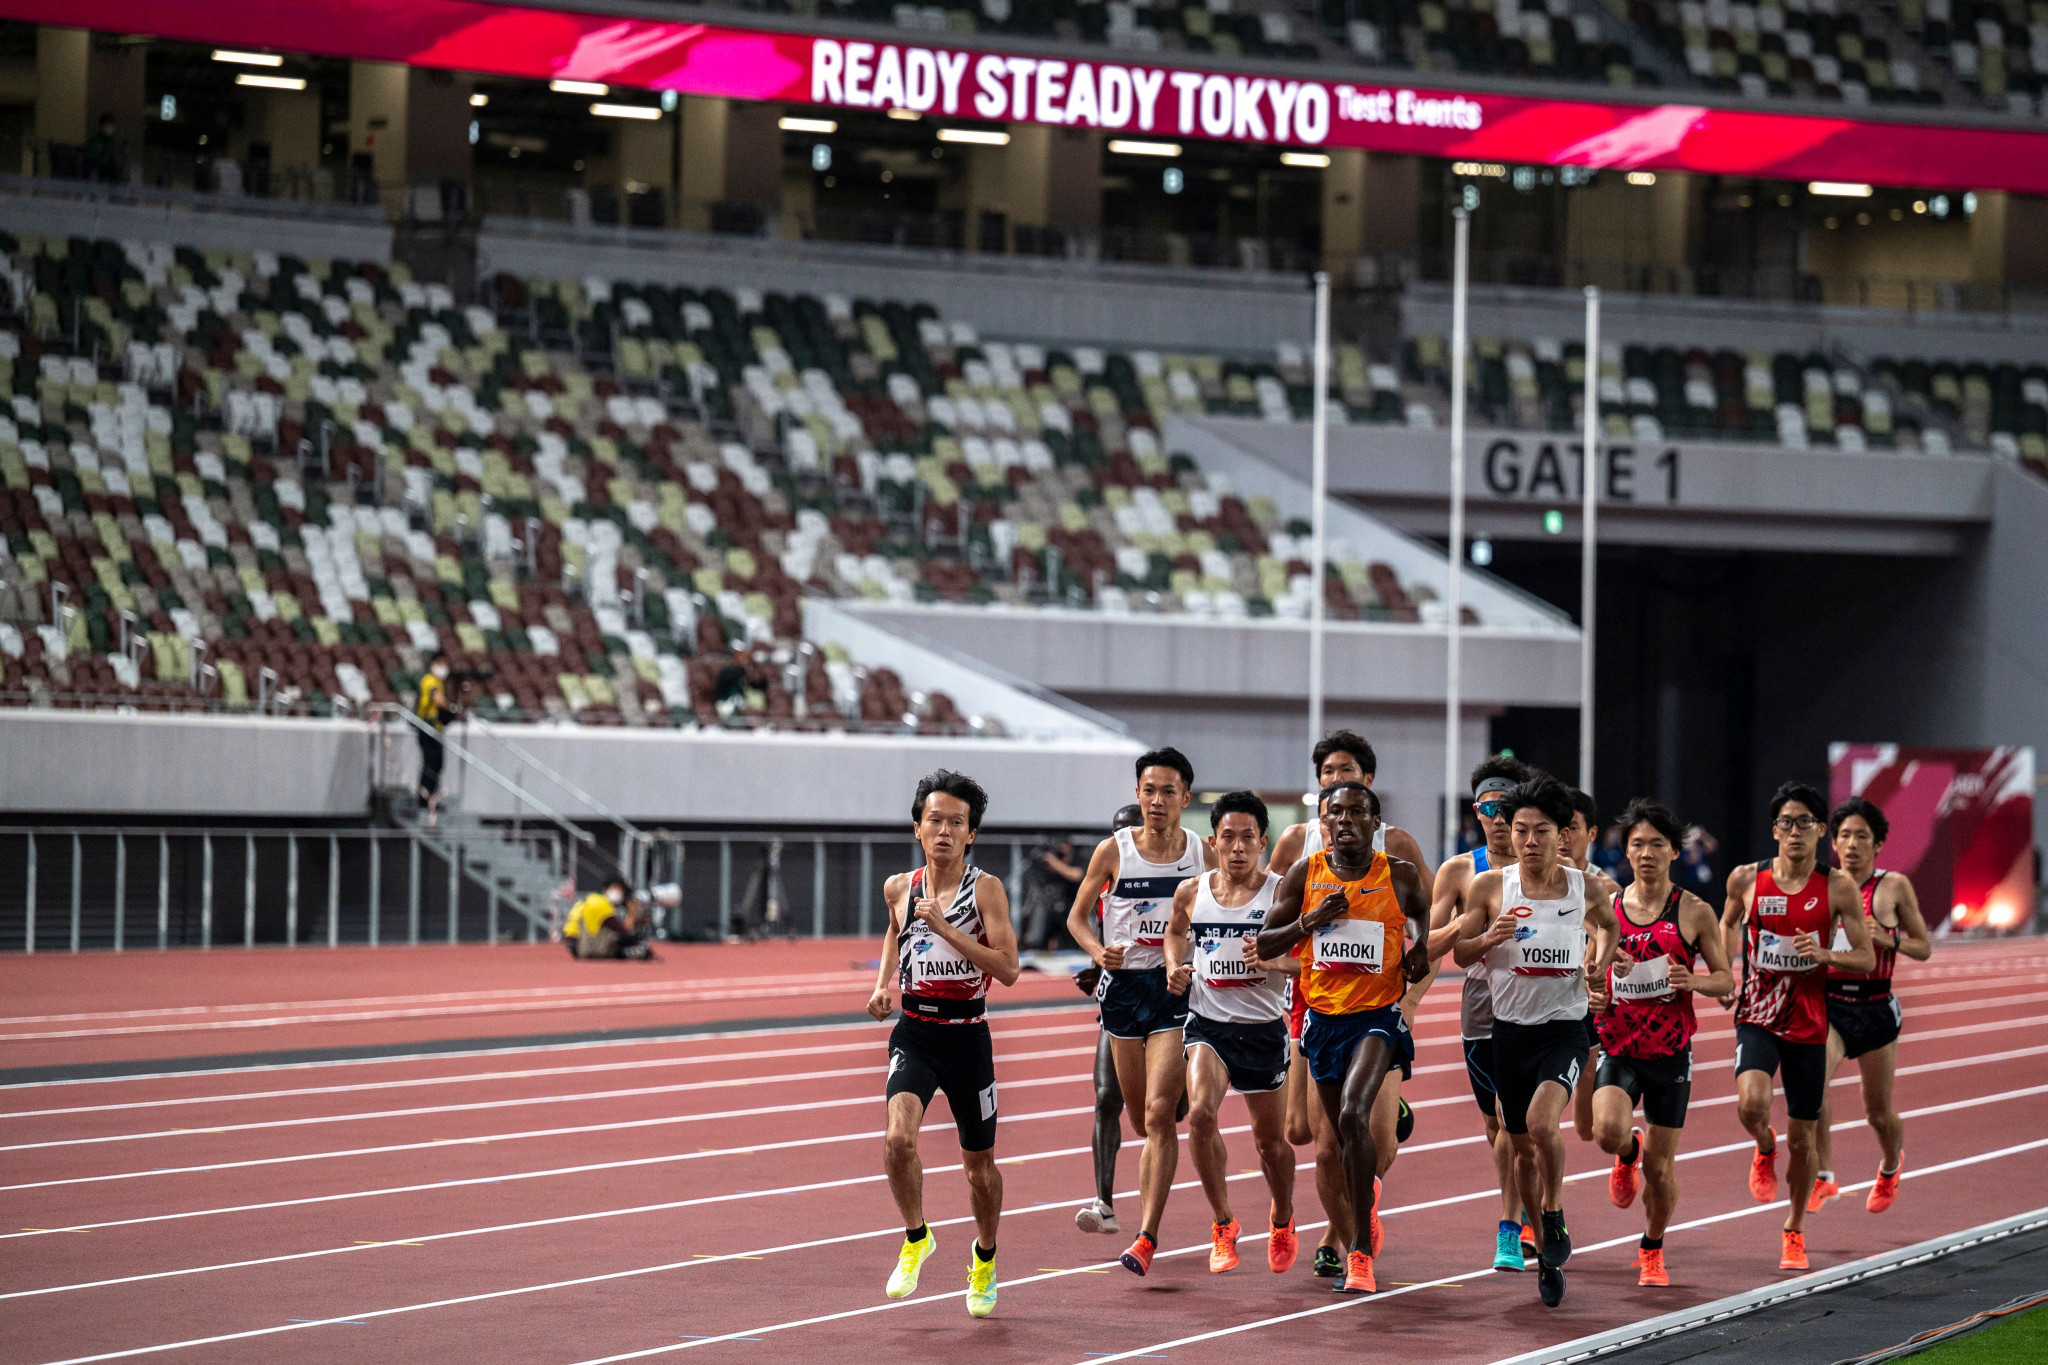 Test events at Tokyo's National Stadium were held behind closed doors last month, but 10,000 spectators are set to be allowed inside large sporting venues from tomorrow ©Getty Images